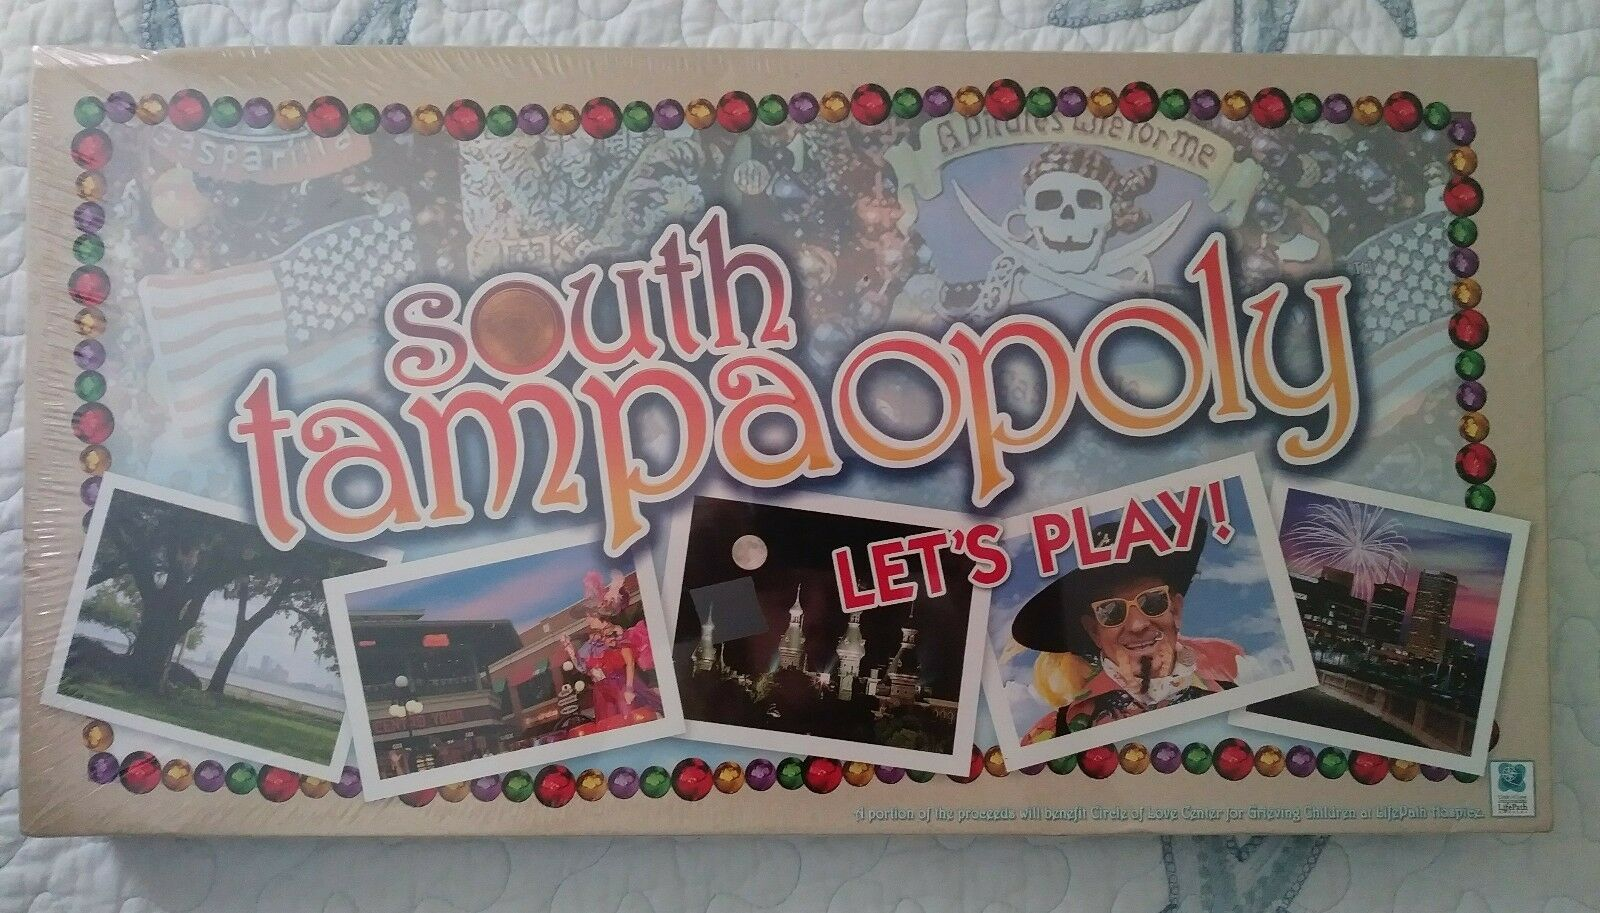 SOUTH TAMPAOPOLY Board Game RARE Tampa Collectible Monopoly Factory Sealed Promo